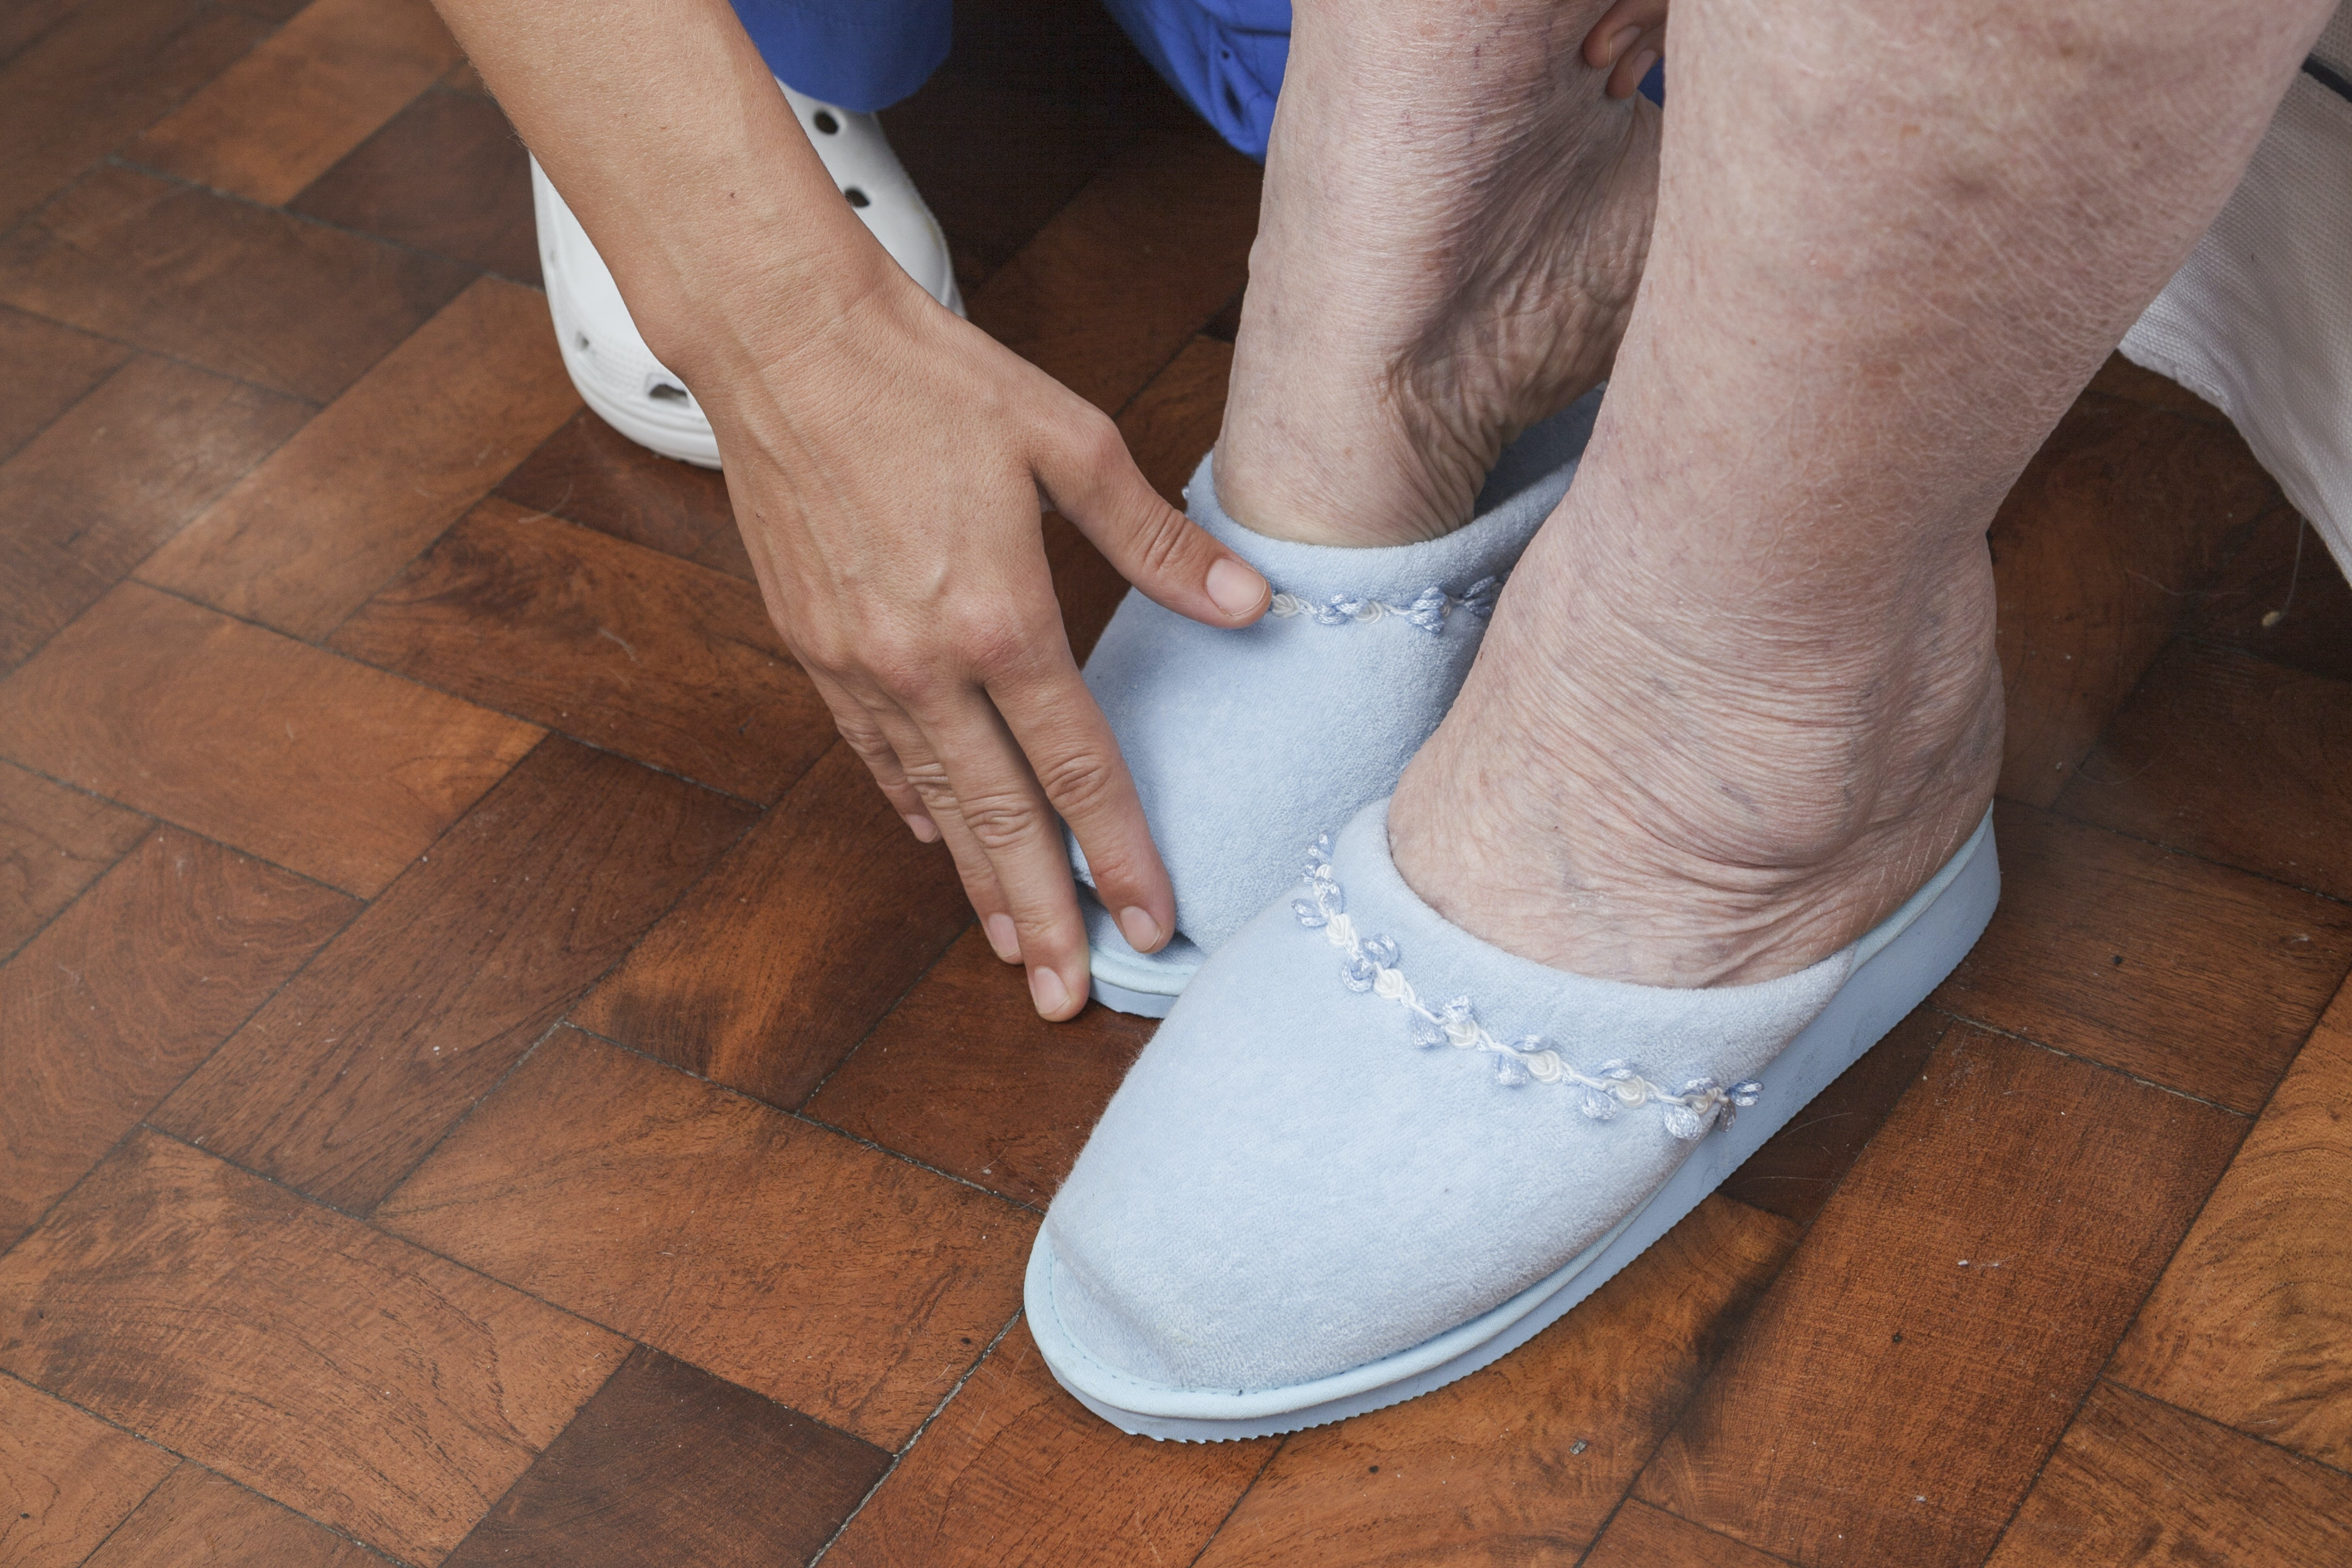 An image depicting a person suffering from swollen ankle symptoms